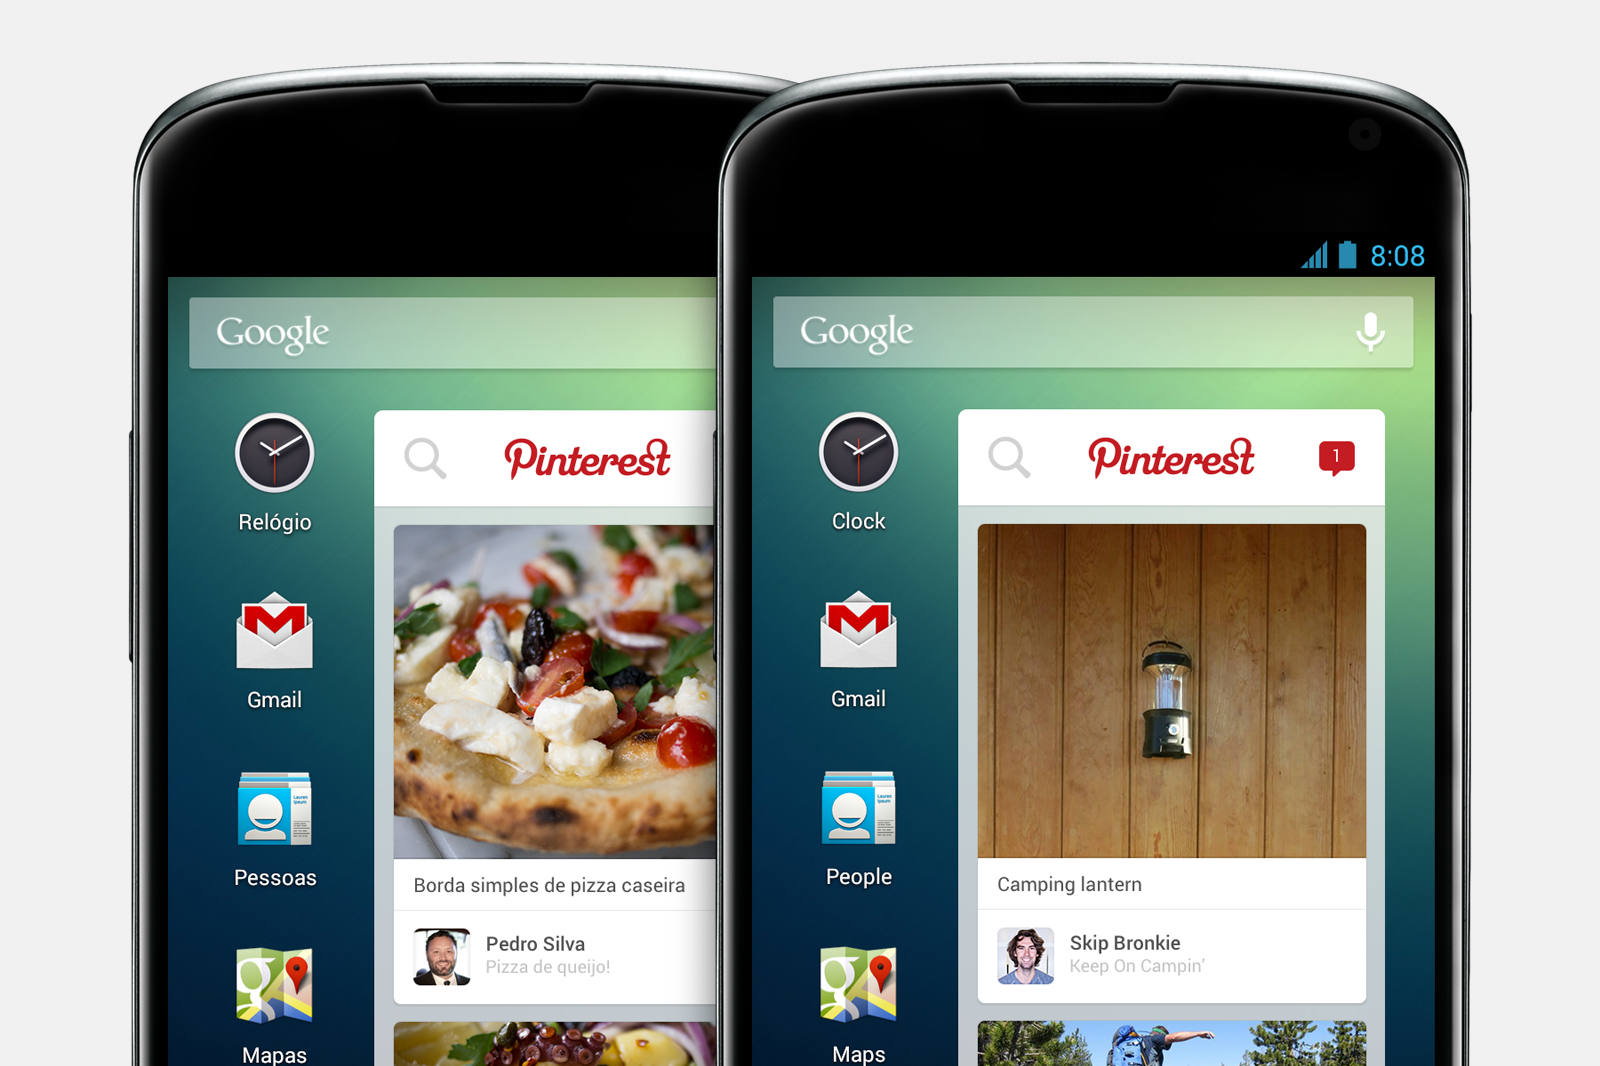 Telefónica Will Push Pinterest to New Users in Latin America and Europe